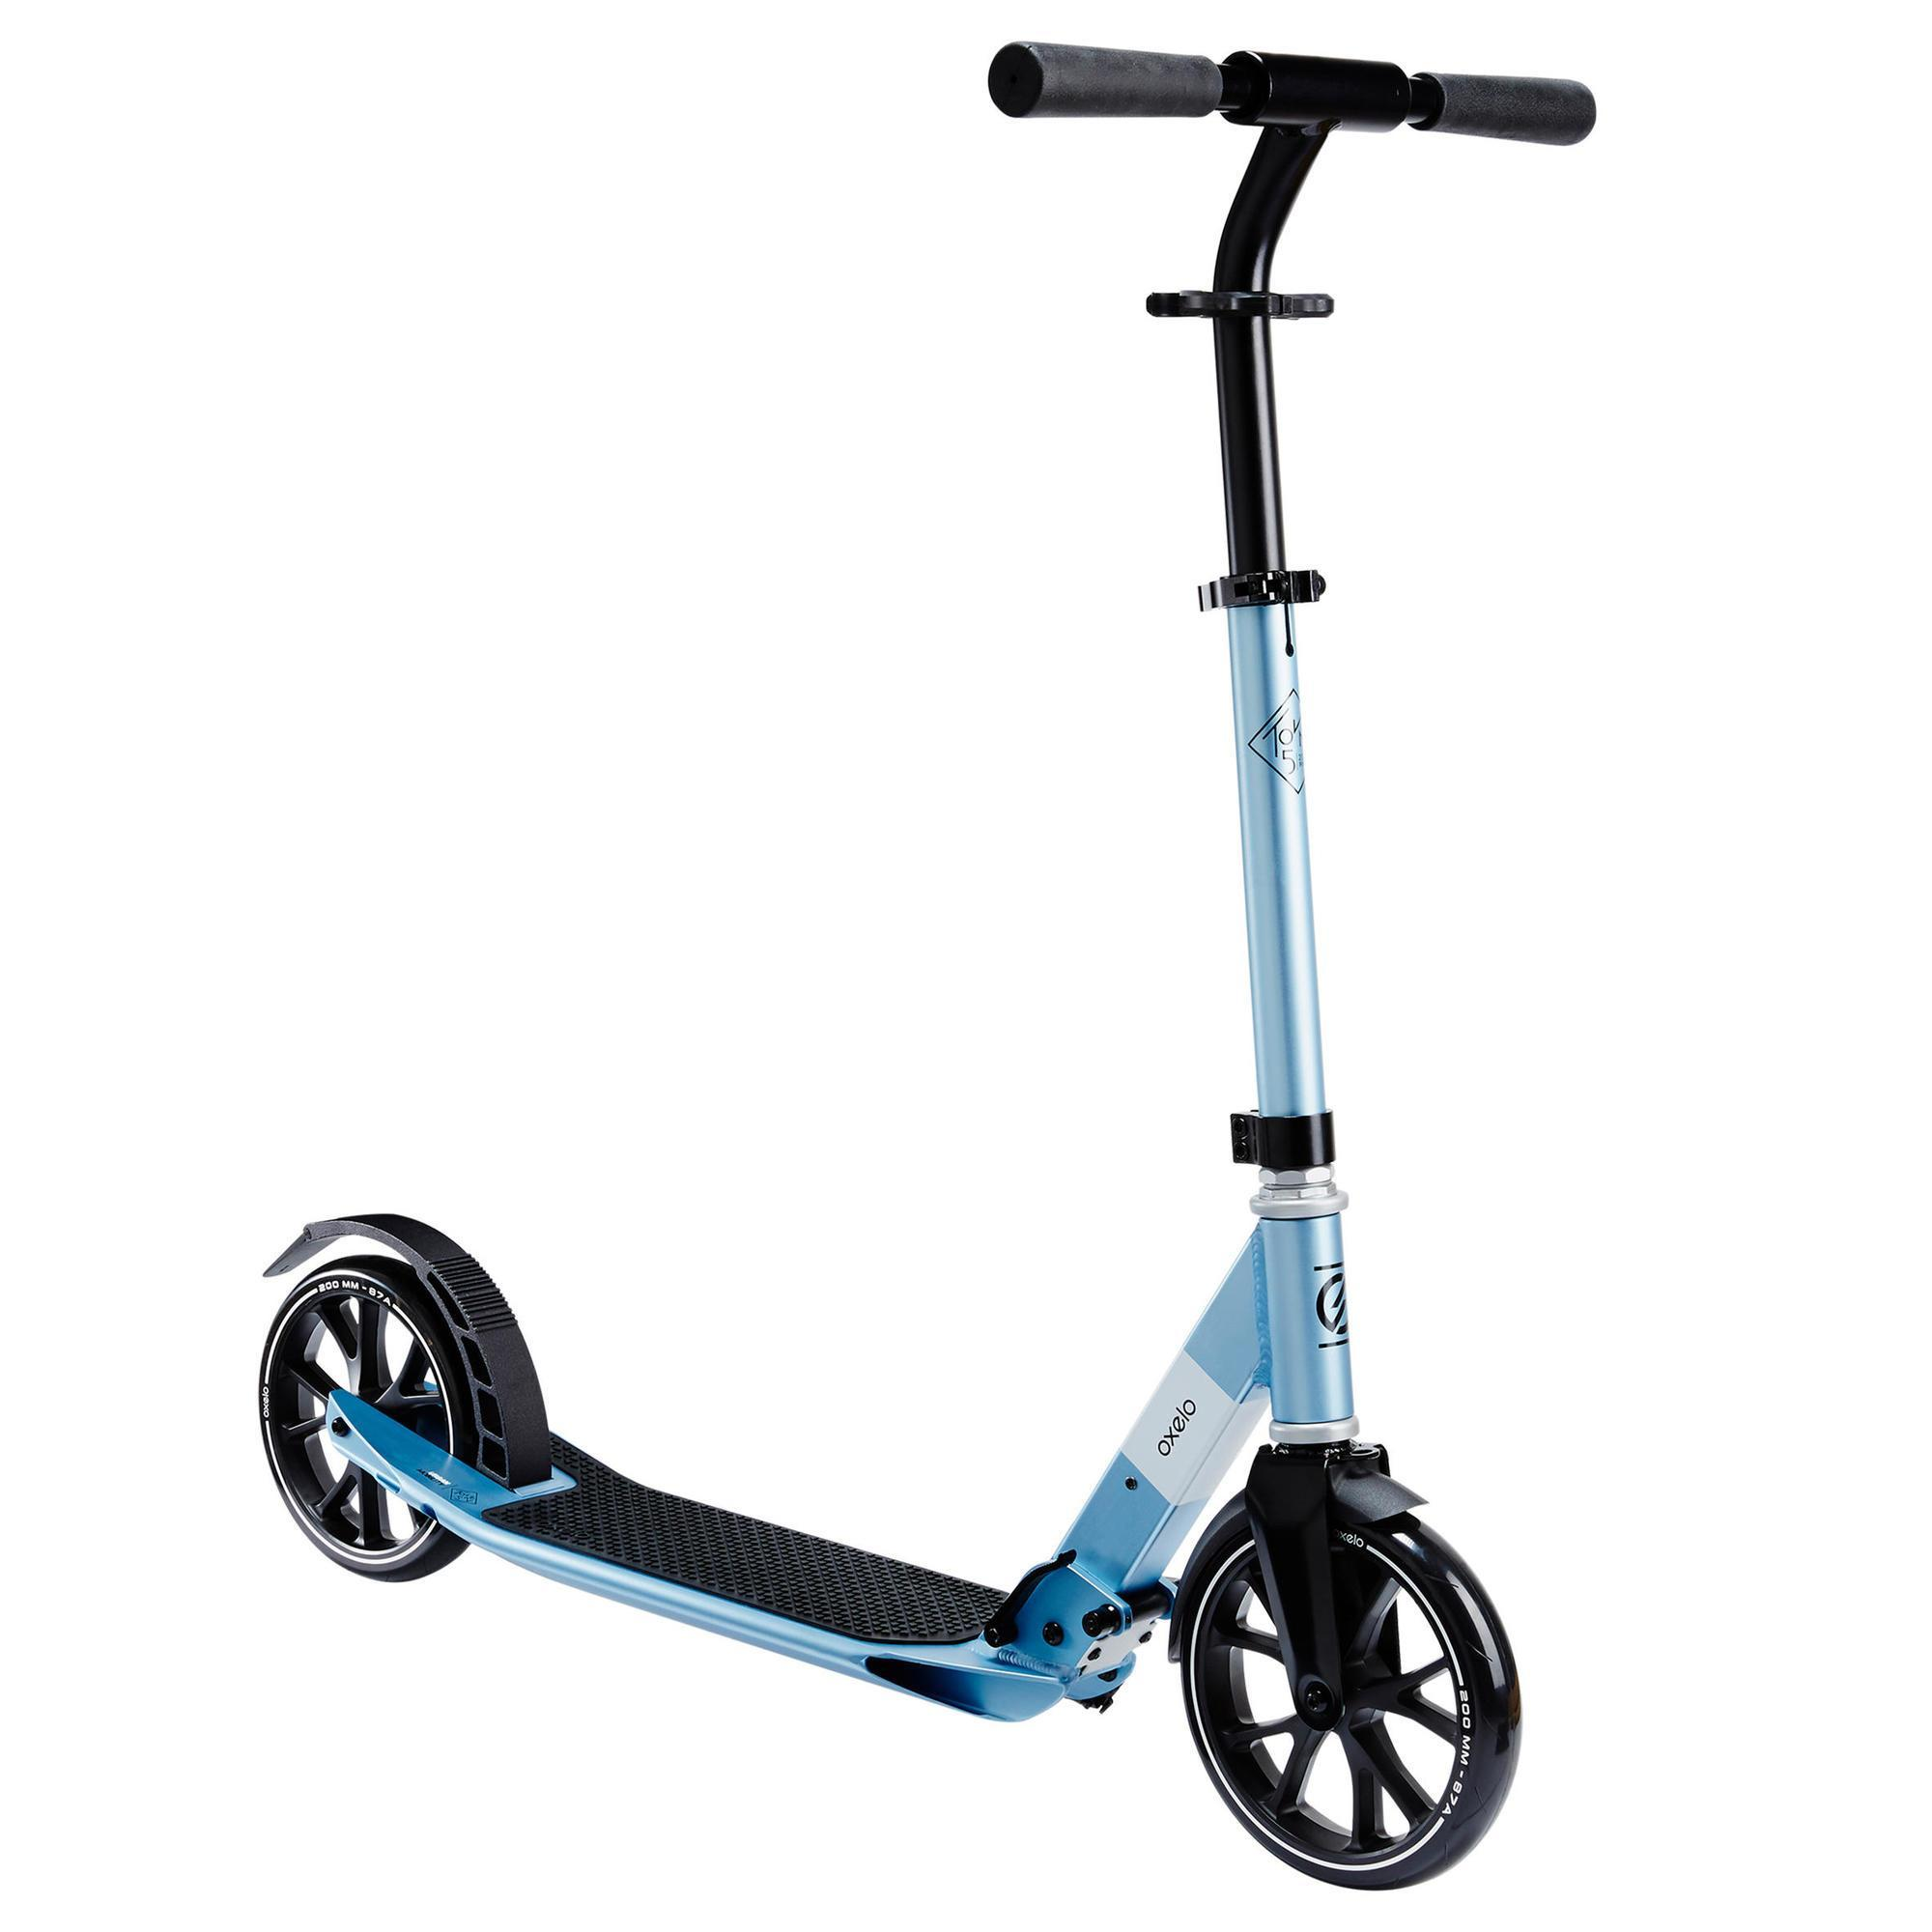 TROTTINETTE ADULTE TOWN 5 XL GRISE OXELO